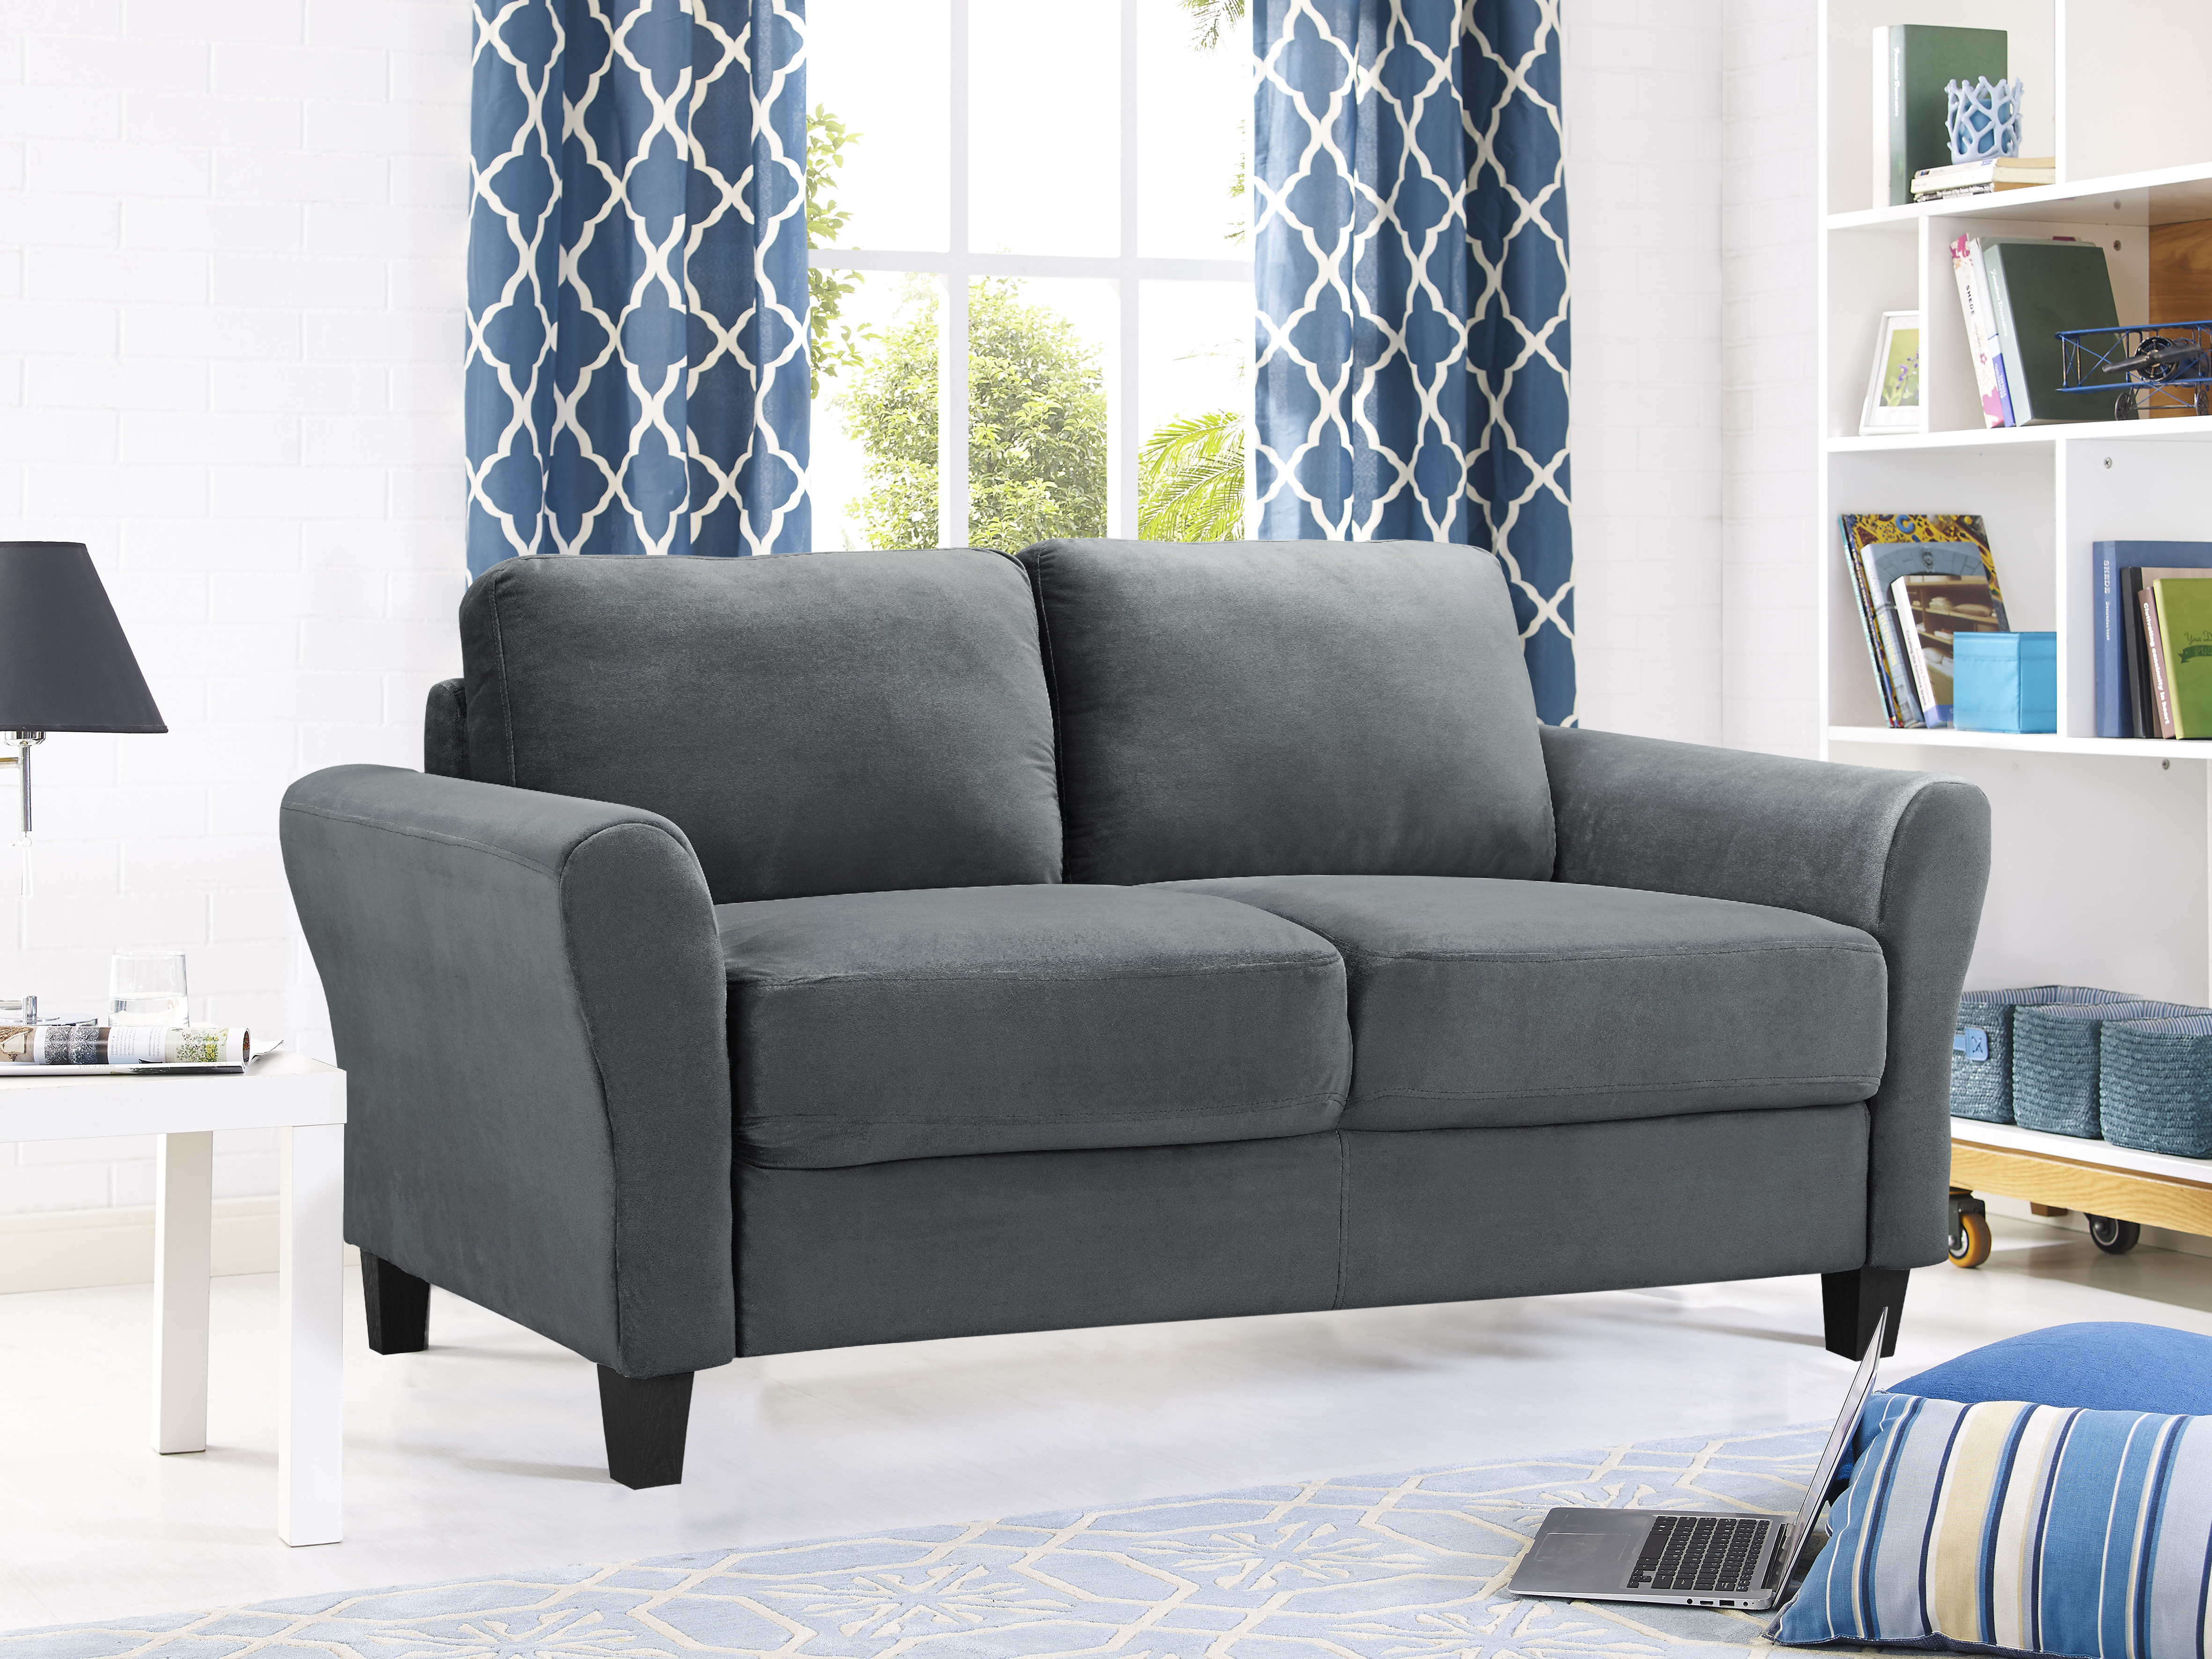 33a2ad46a2 Lifestyle Solutions Alexa Rolled-Arm Upholstered Fabric Loveseat, Multiple  Colors - Walmart.com